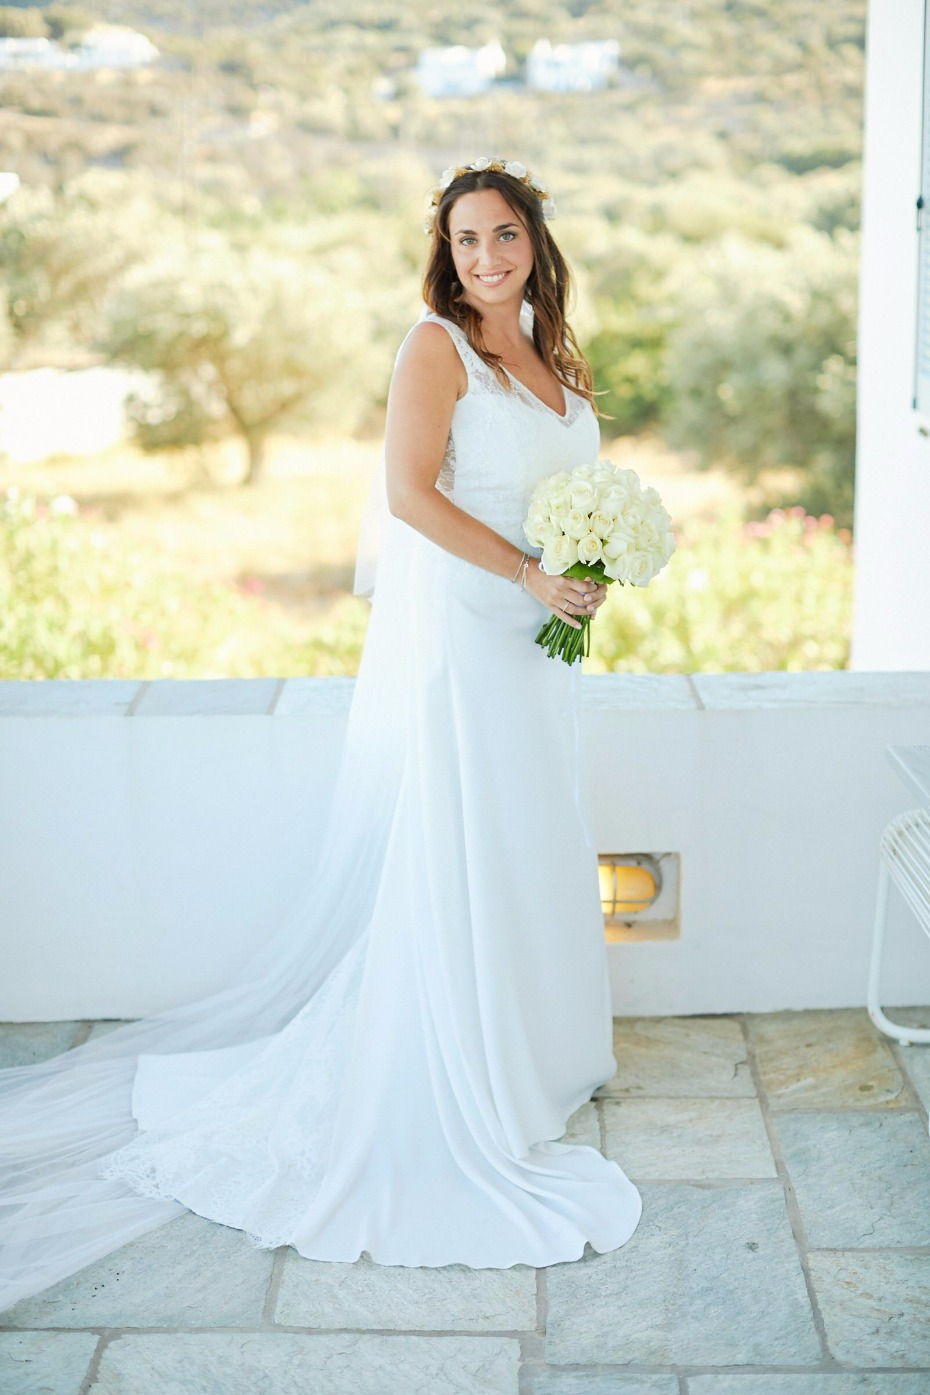 bride all dressed up for her Greek wedding day